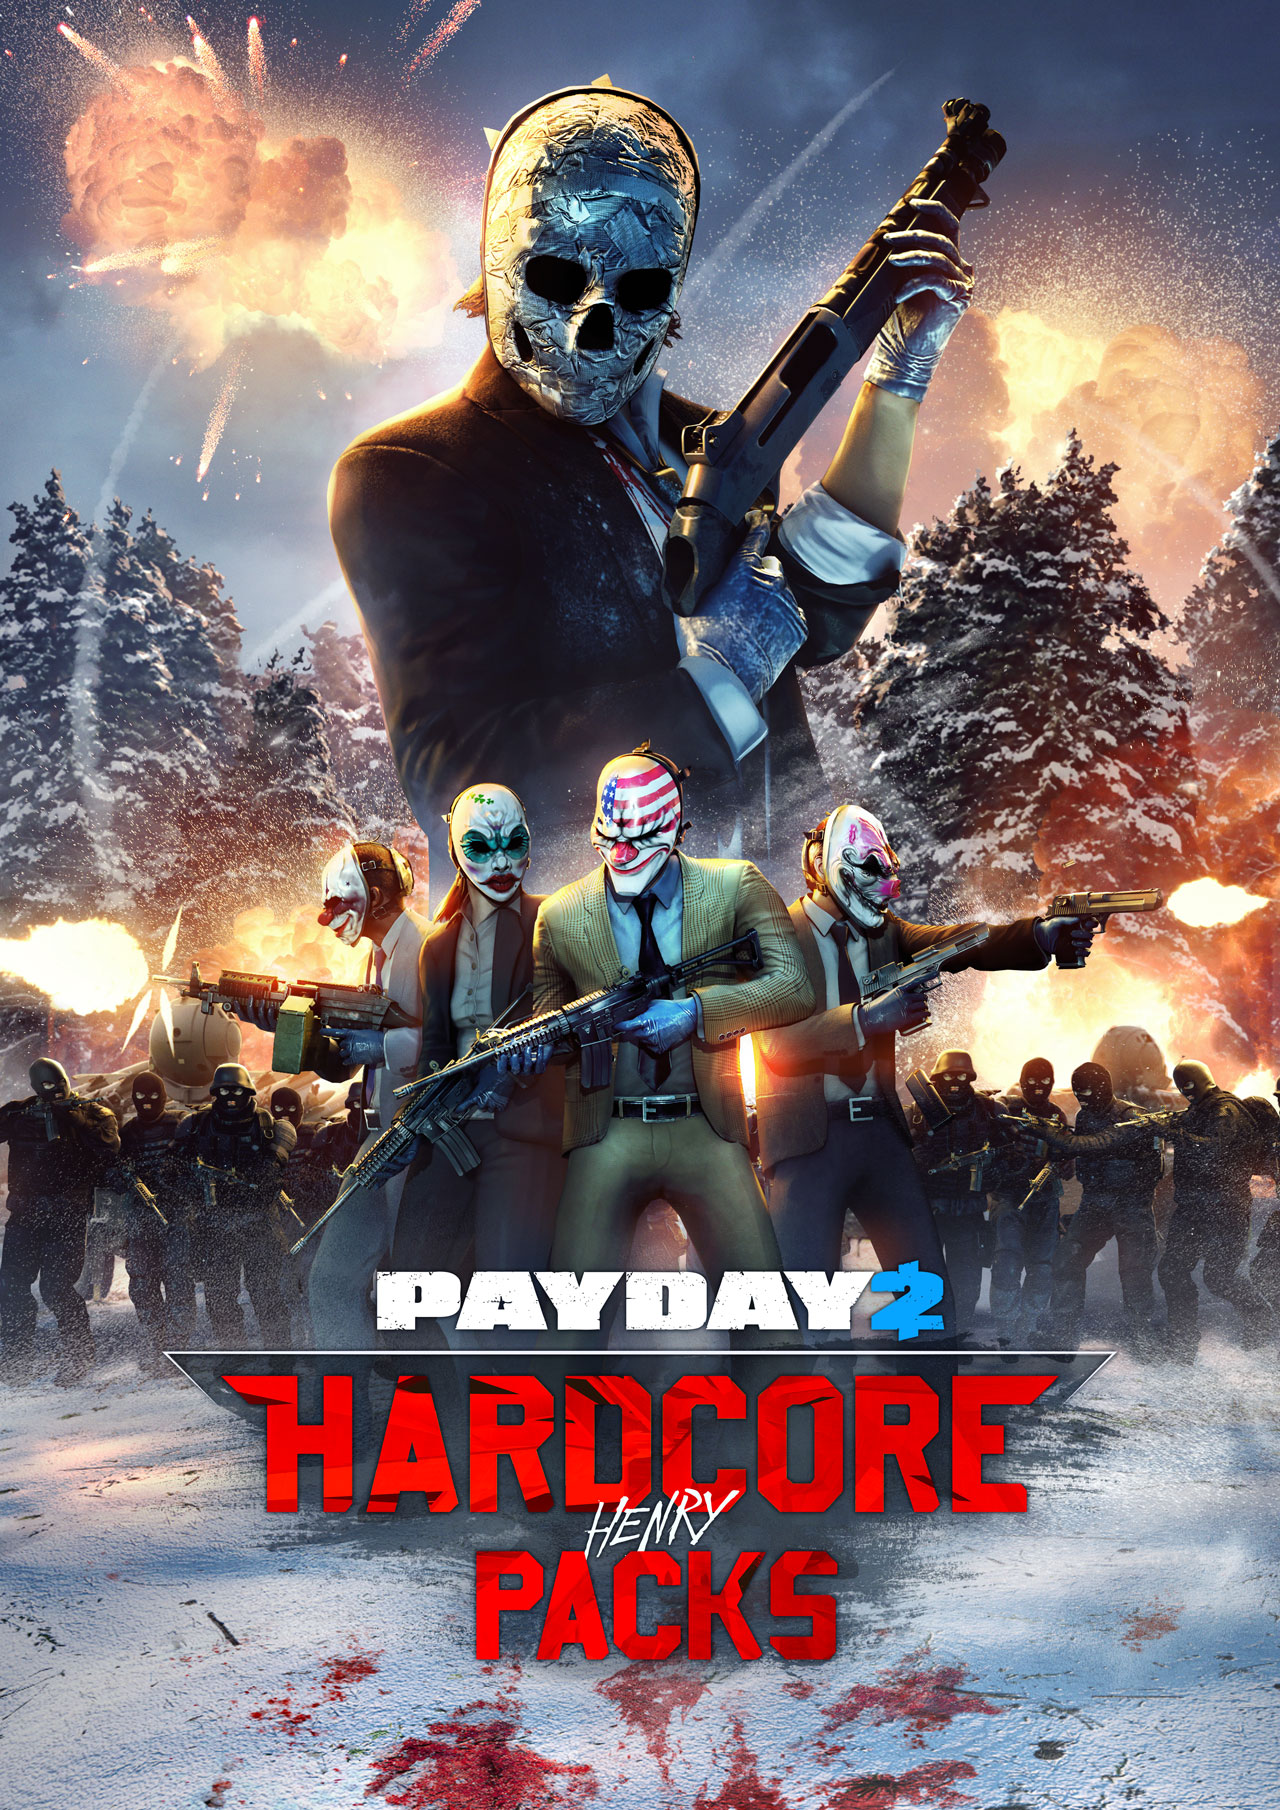 Payday 2 Hardcore Henry Packs Jimmy Character Pack